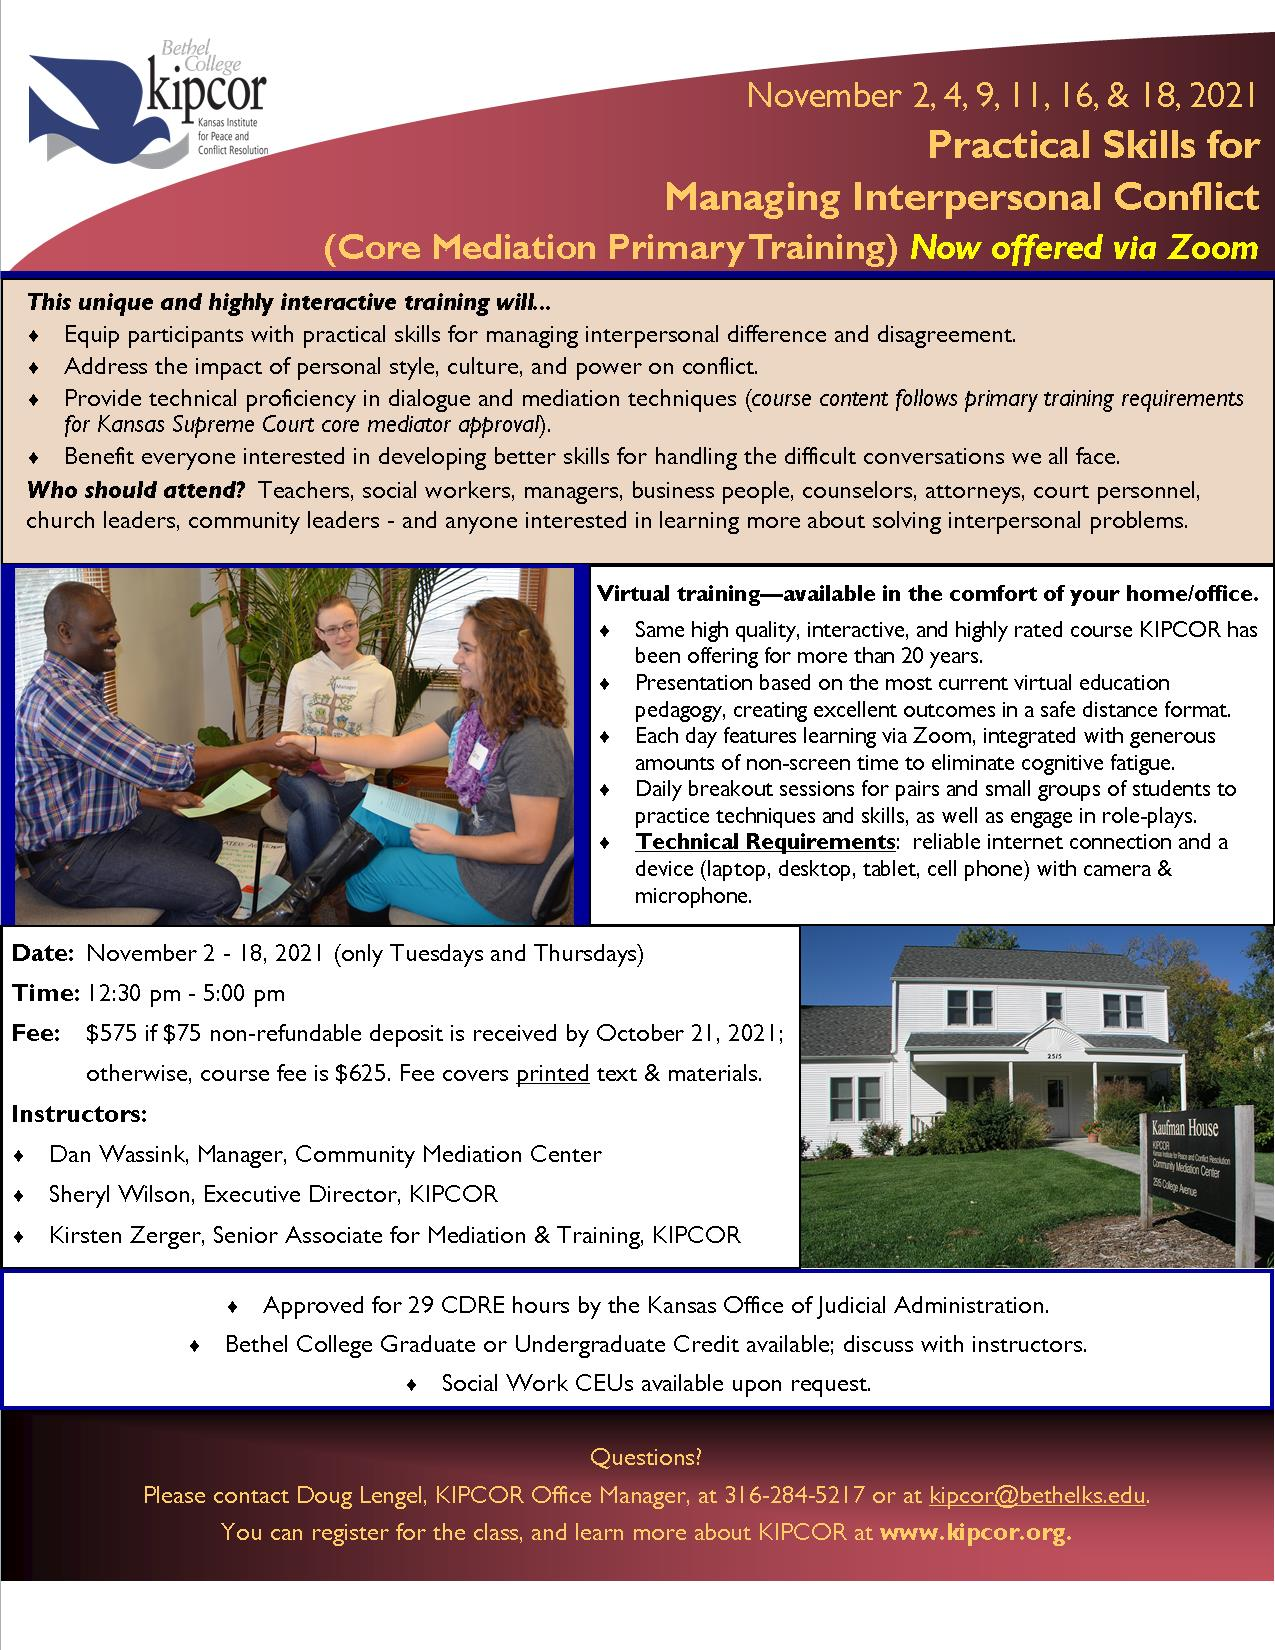 Practical Skills for Managing Interpersonal Conflict (Core Mediation Primary Training) Via Zoom November 2021